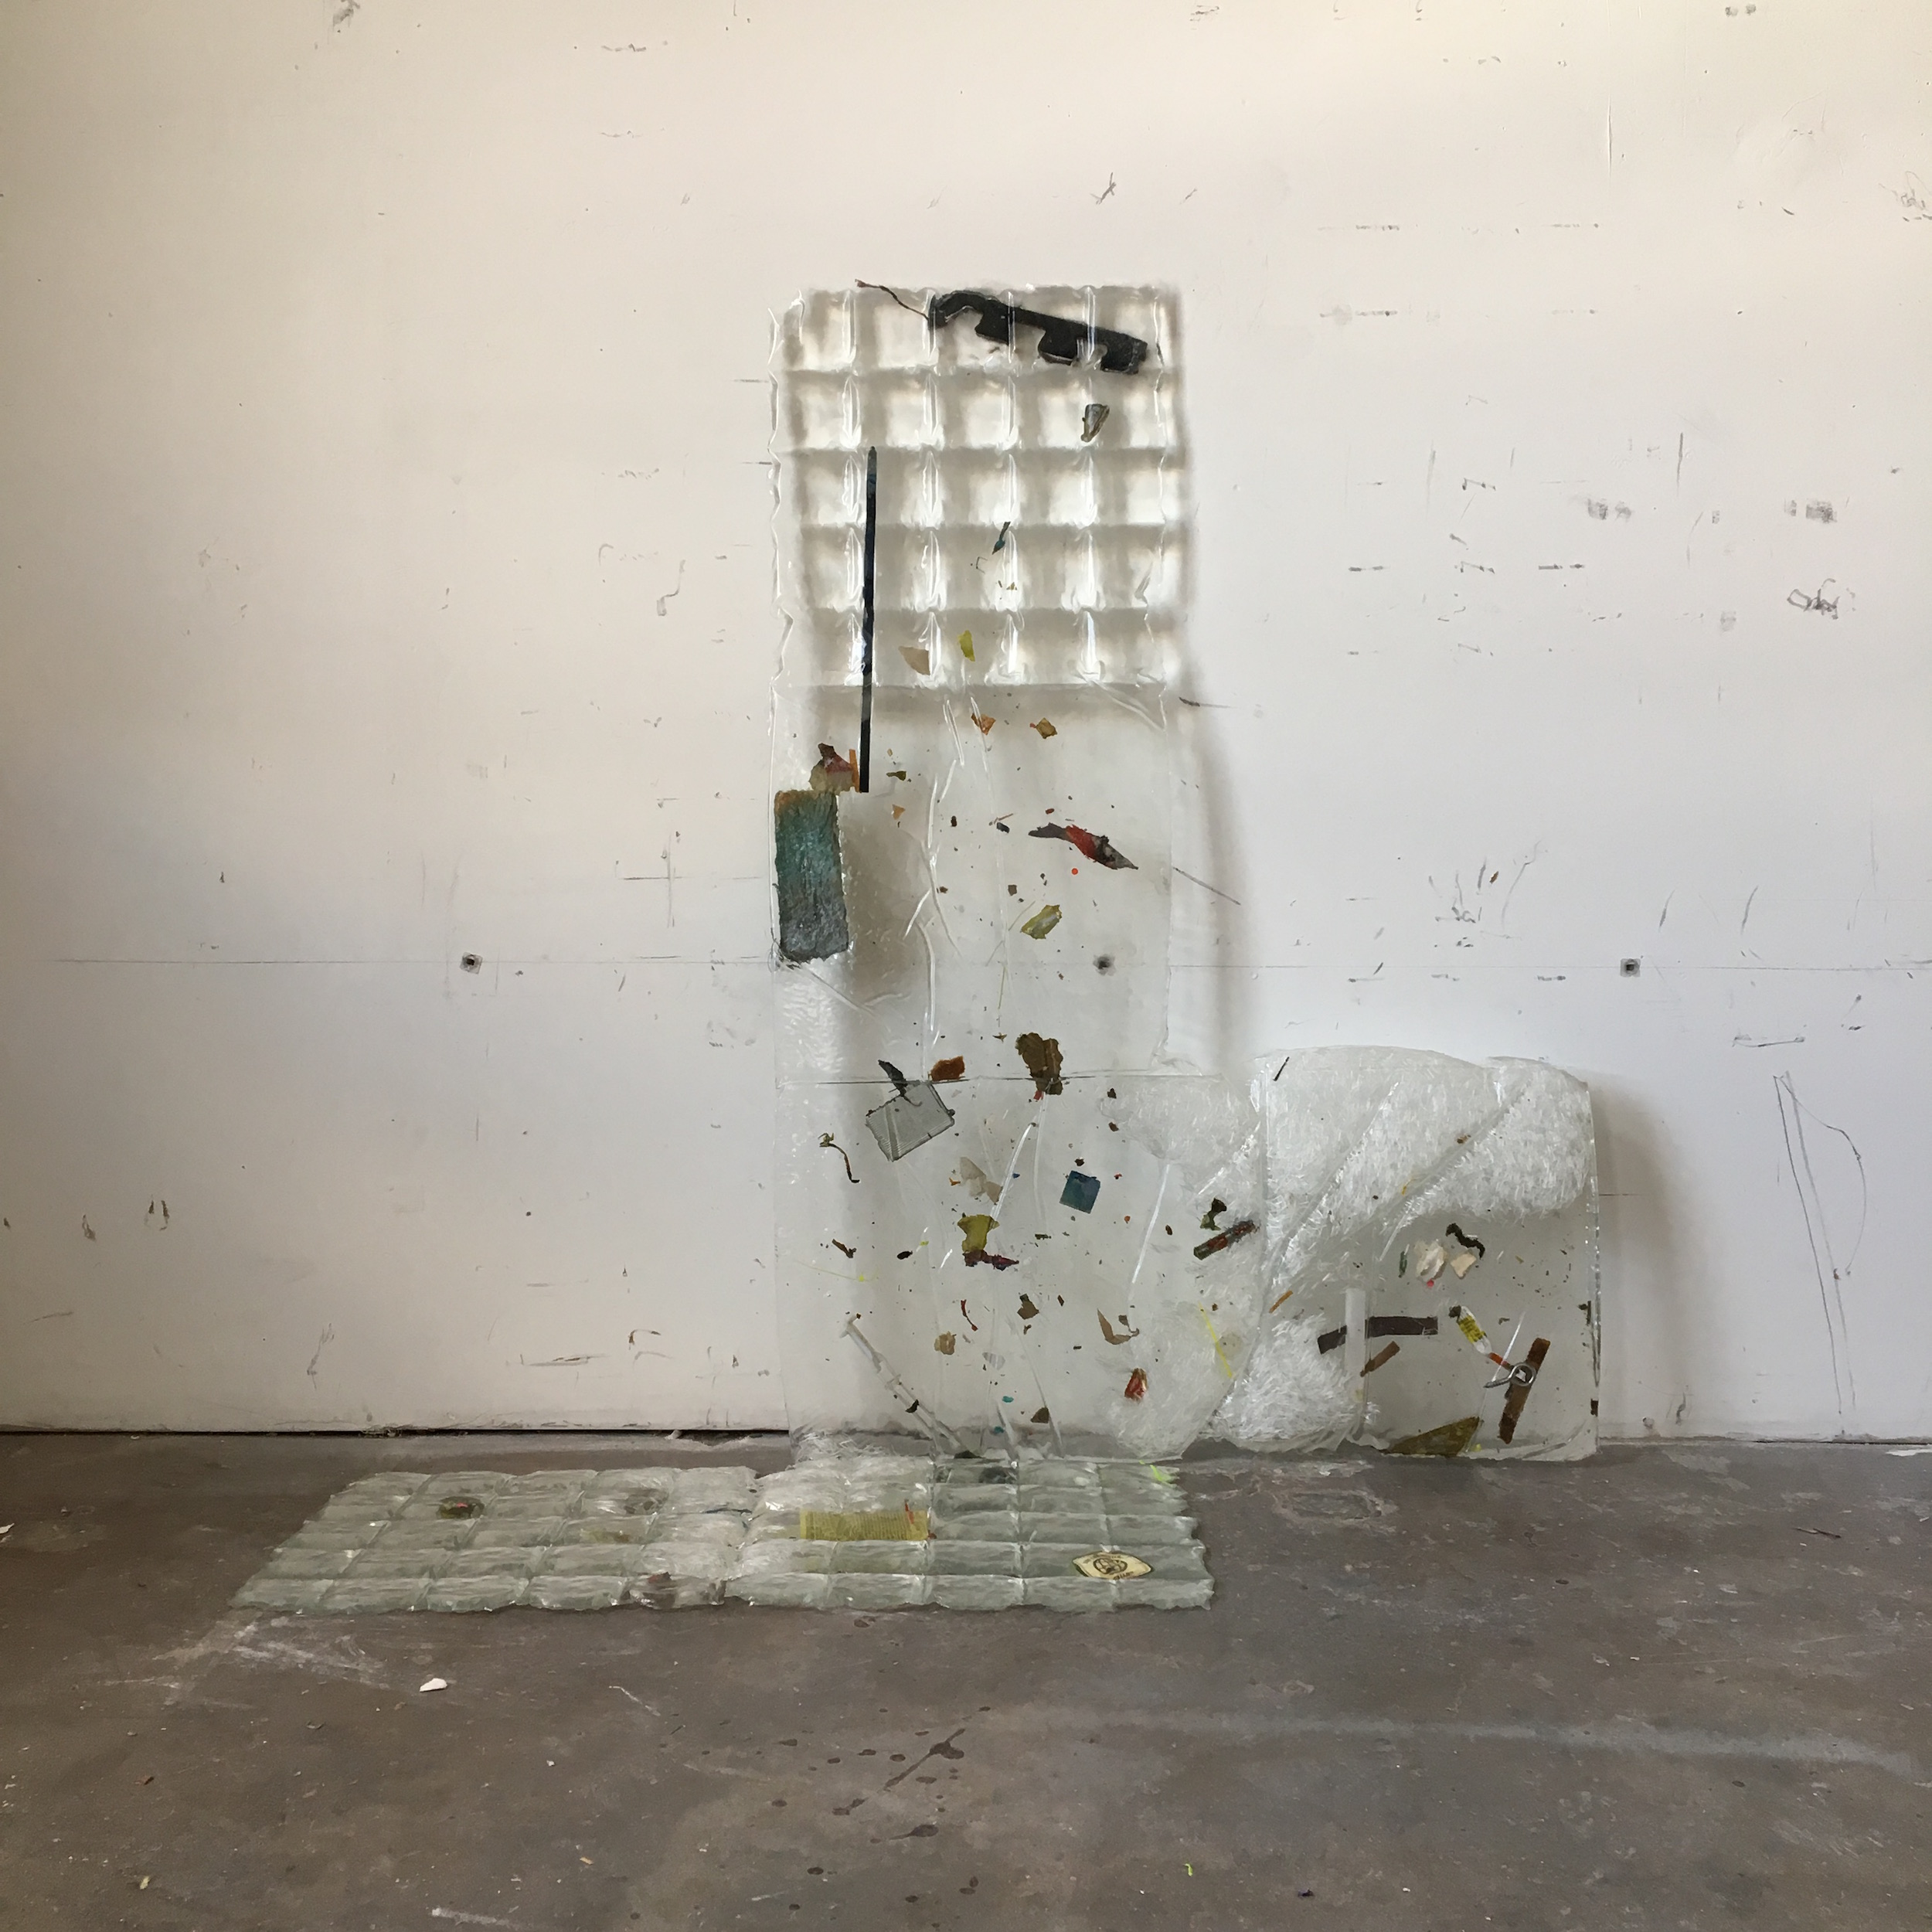 IAIN MUIRHEAD   18175,   2018. Aggregate studio sediment (2014-2018) and polyester resin. 45 x 45 x 17 inches.